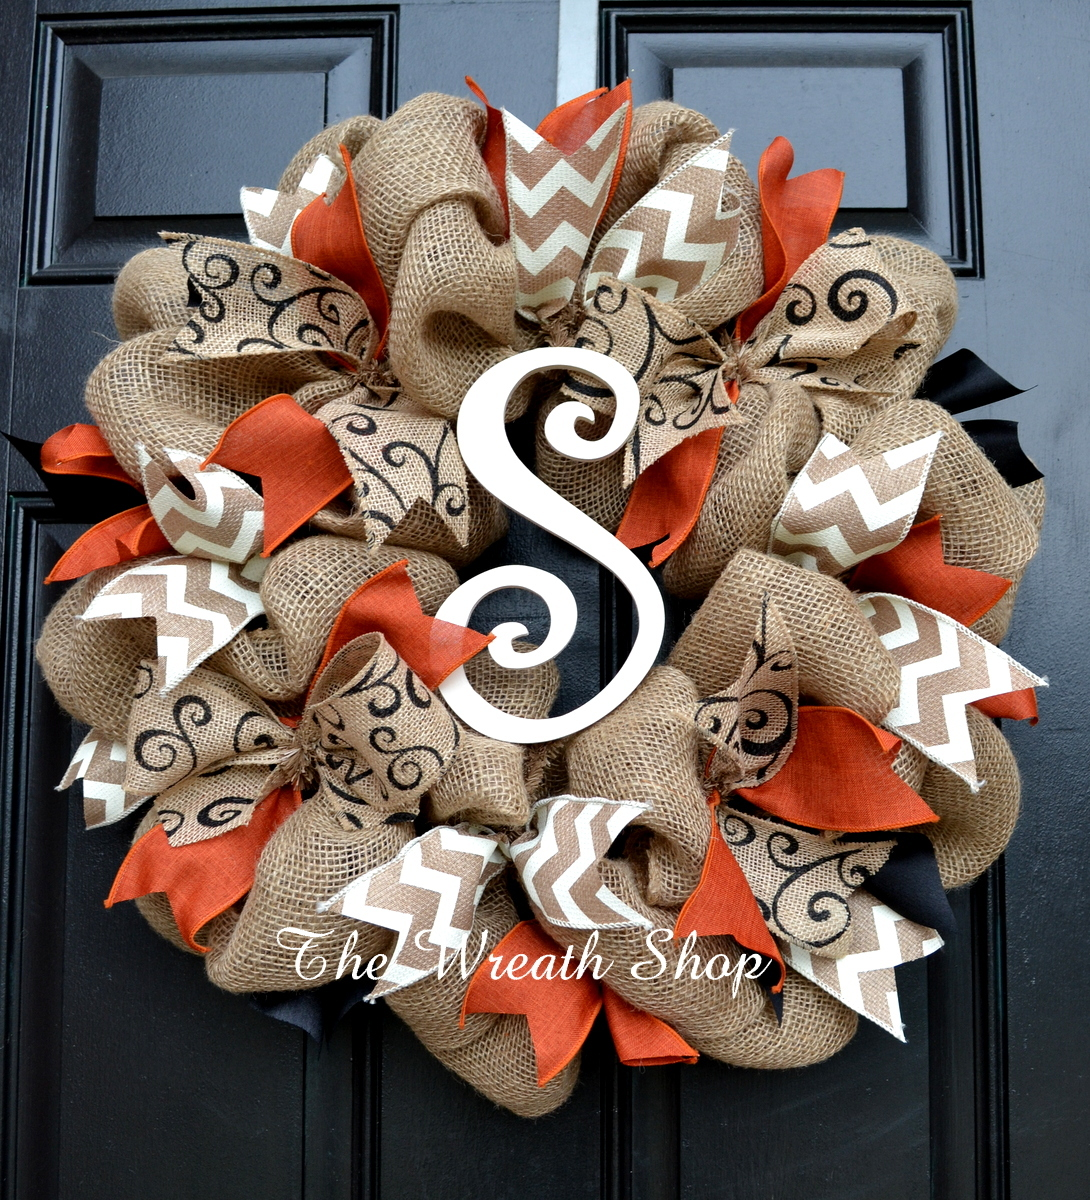 Burlap is one of fall's most versatile supplies, and it adds rustic appeal to DIY project. Perfect for wreaths!